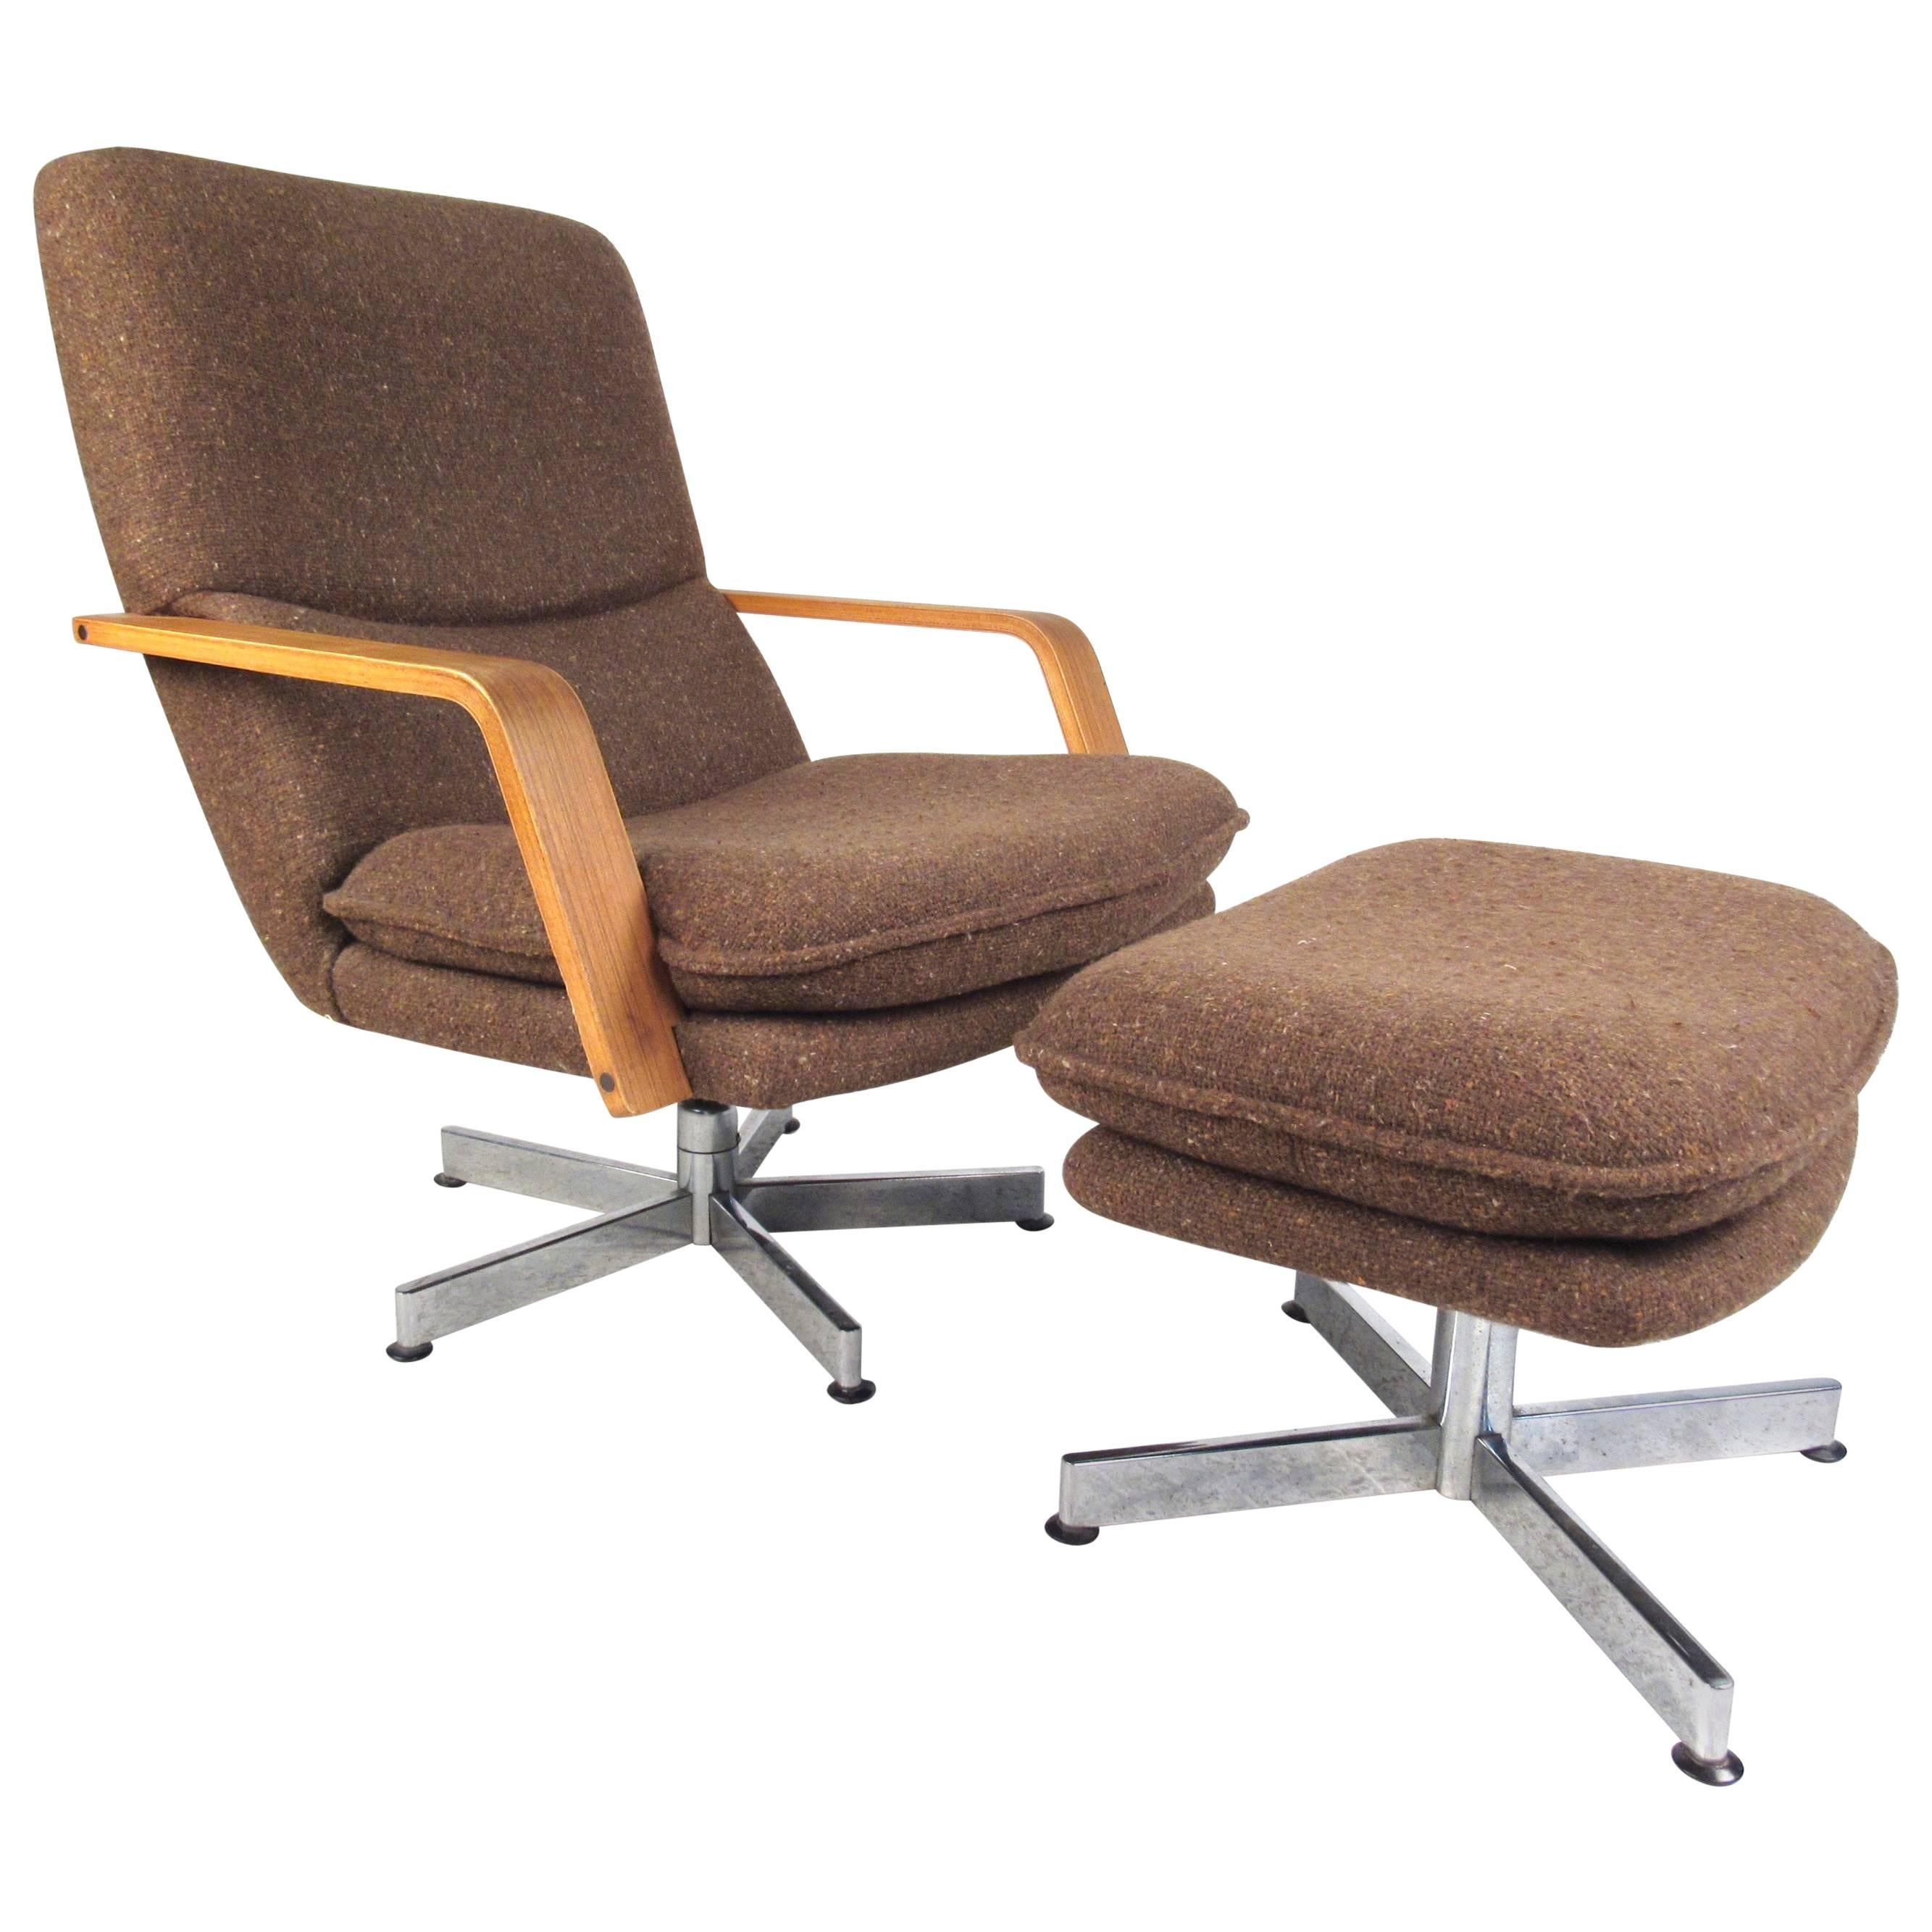 Mid-Century Modern Style Swivel Lounge Chair with Ottoman